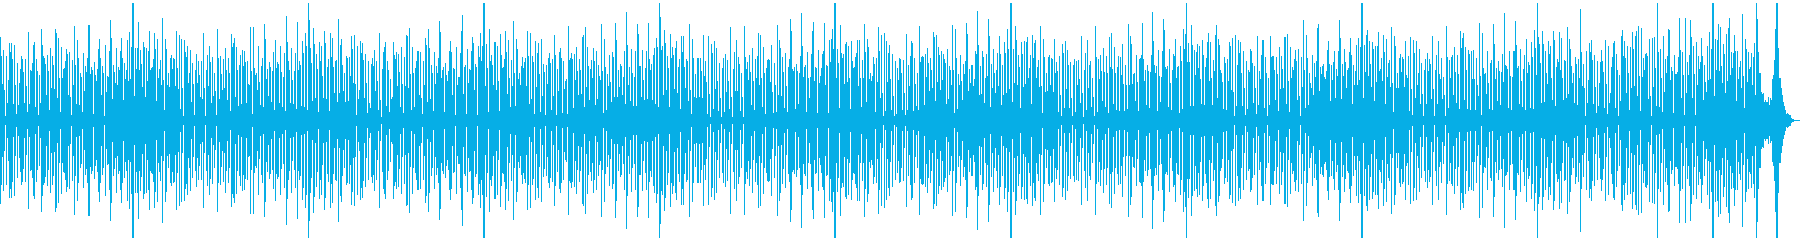 Cute and comical for YouTube's reproduced waveform